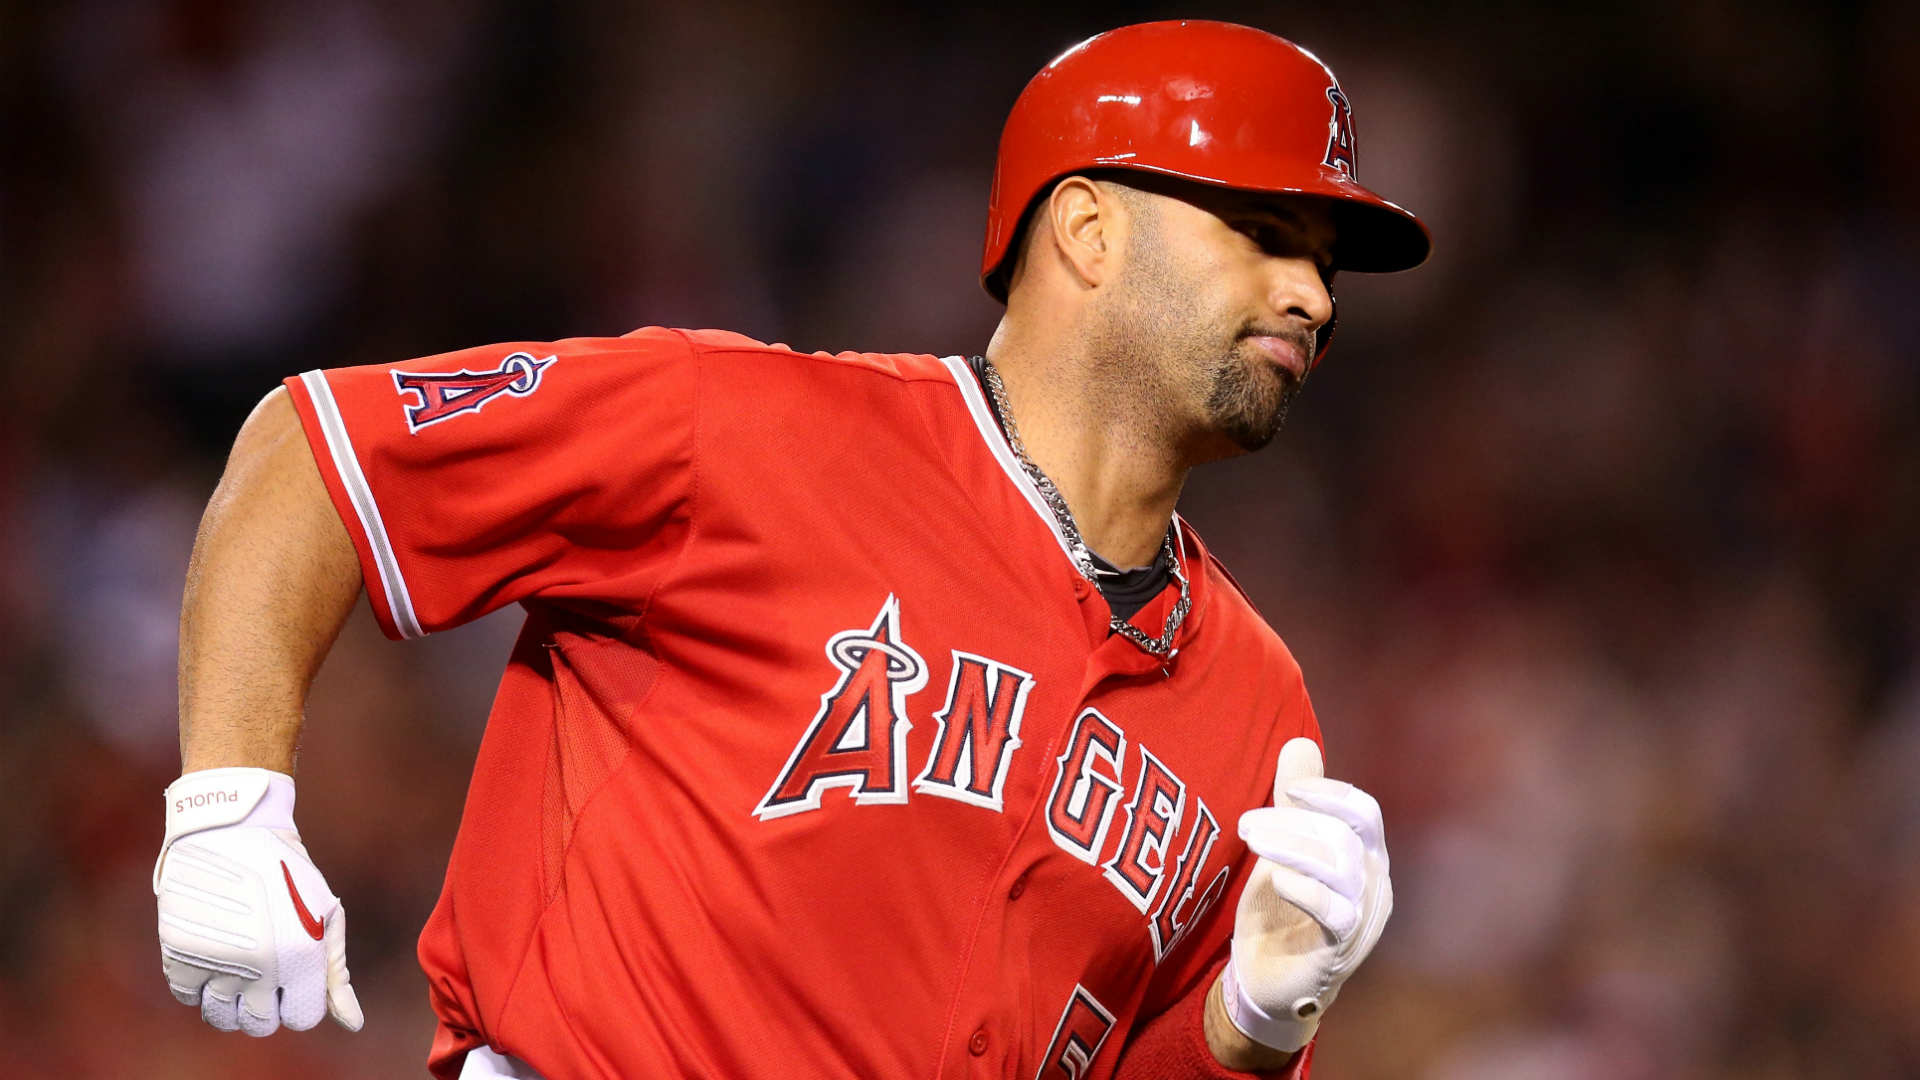 Albert Pujols open to doing Home Run Derby only if he's an All-Star